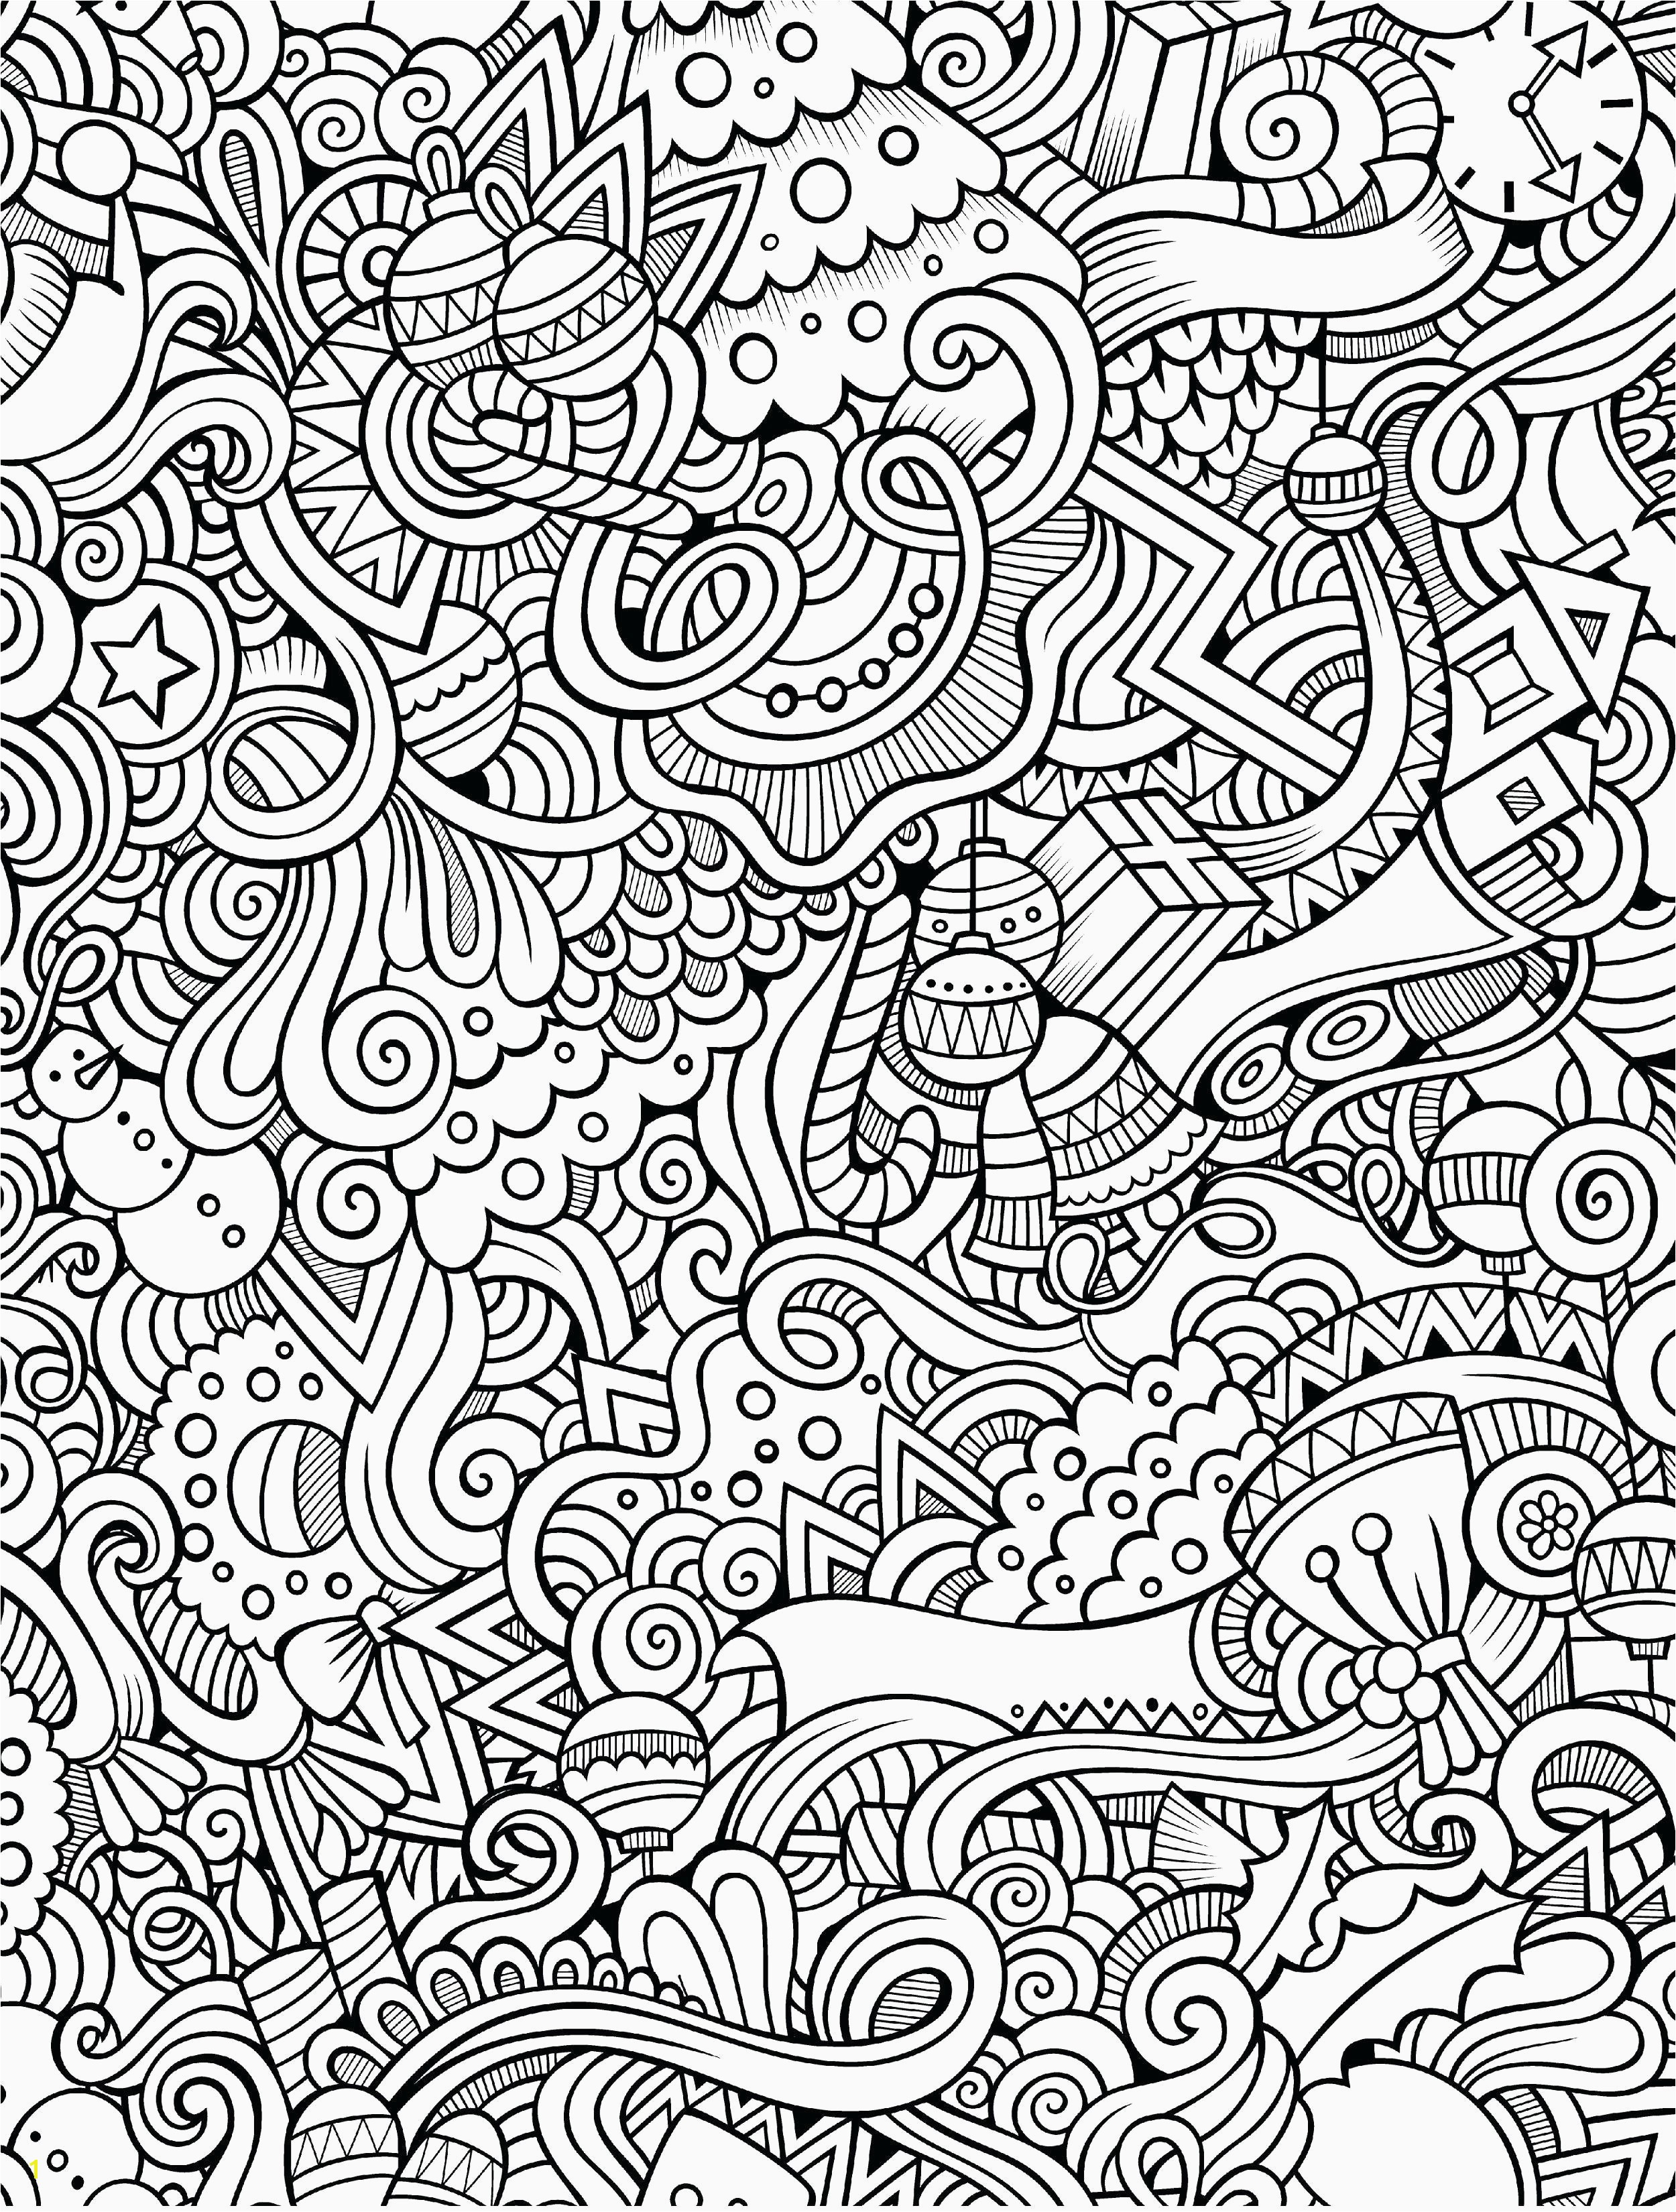 Free Printable Coloring Pages for Adults Pdf Lovely Color by Number for Adults Pdf